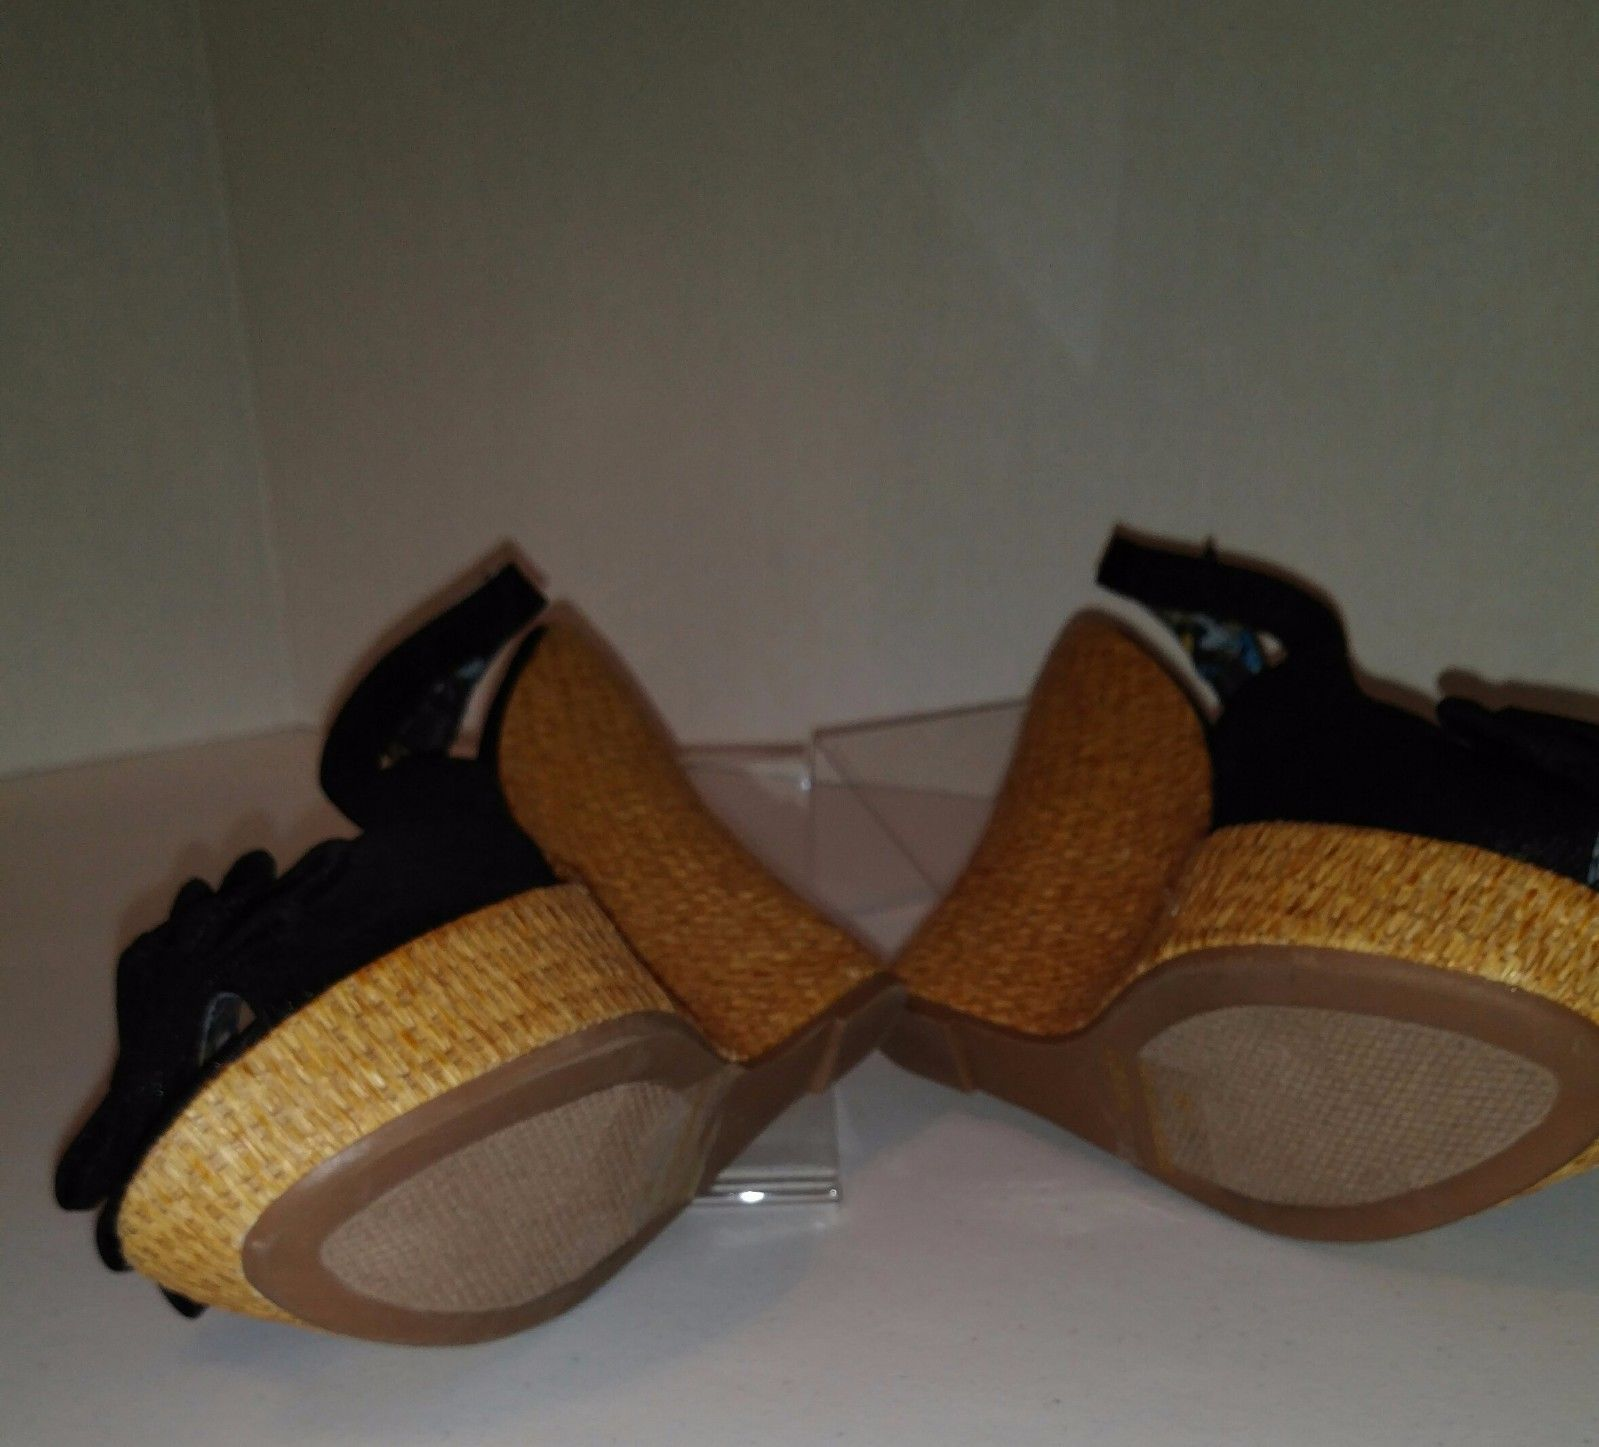 Charlotte Russe Ladies Black Fabric With Bows Woven Wedge Heel Shoes Size 7